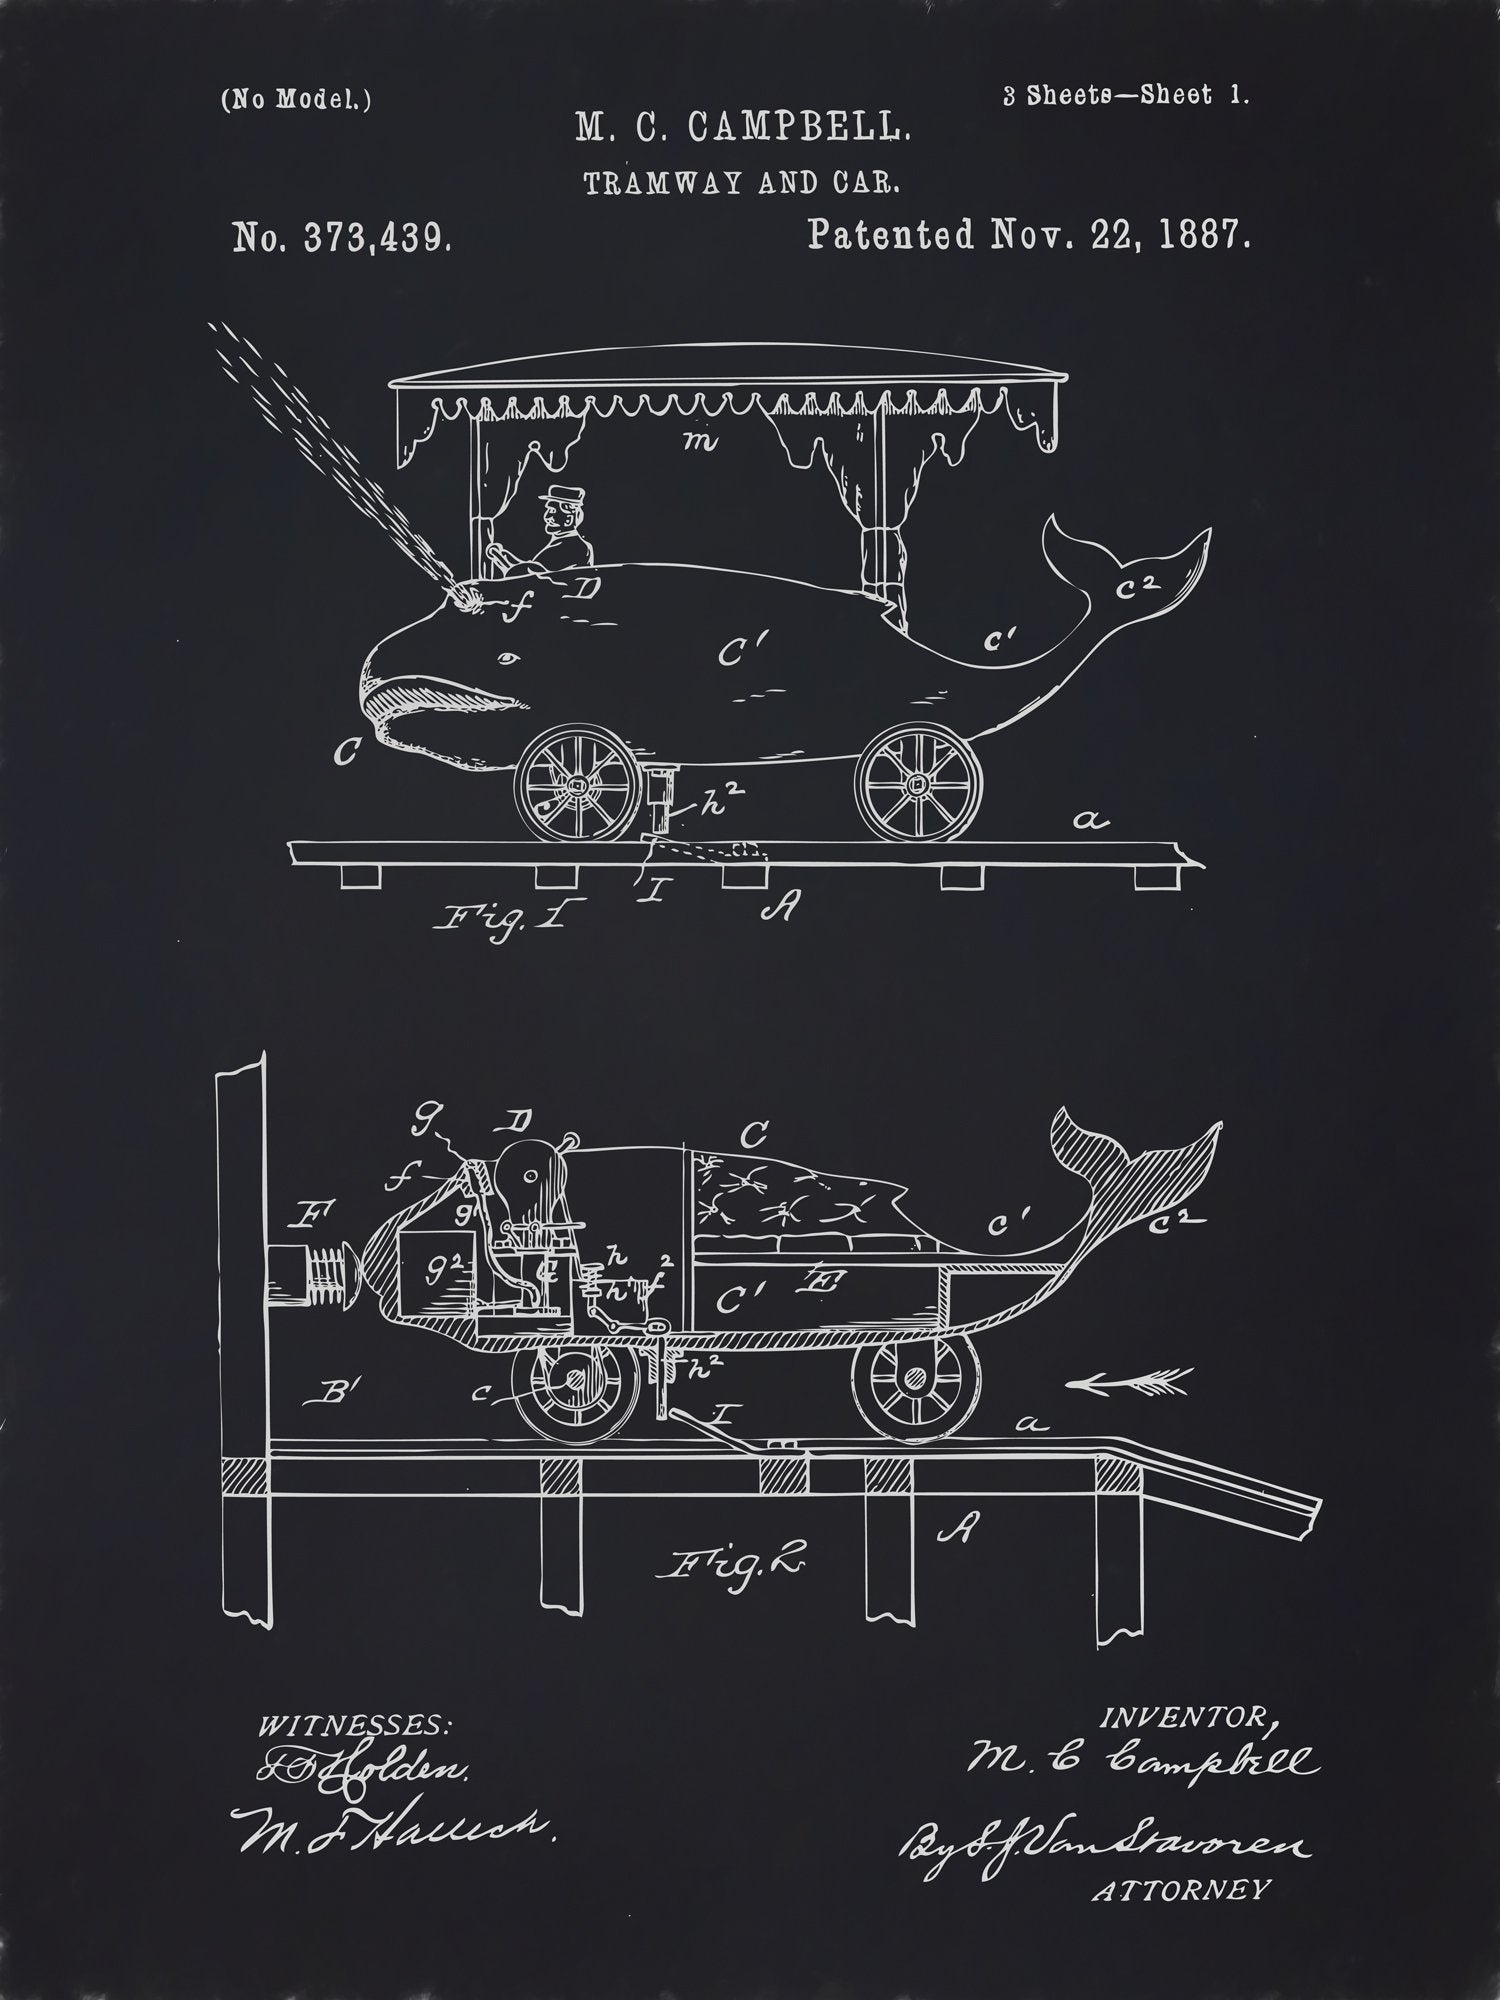 U.S. Patent No. 373439-1 Tramway and Car Reworked, Series 2